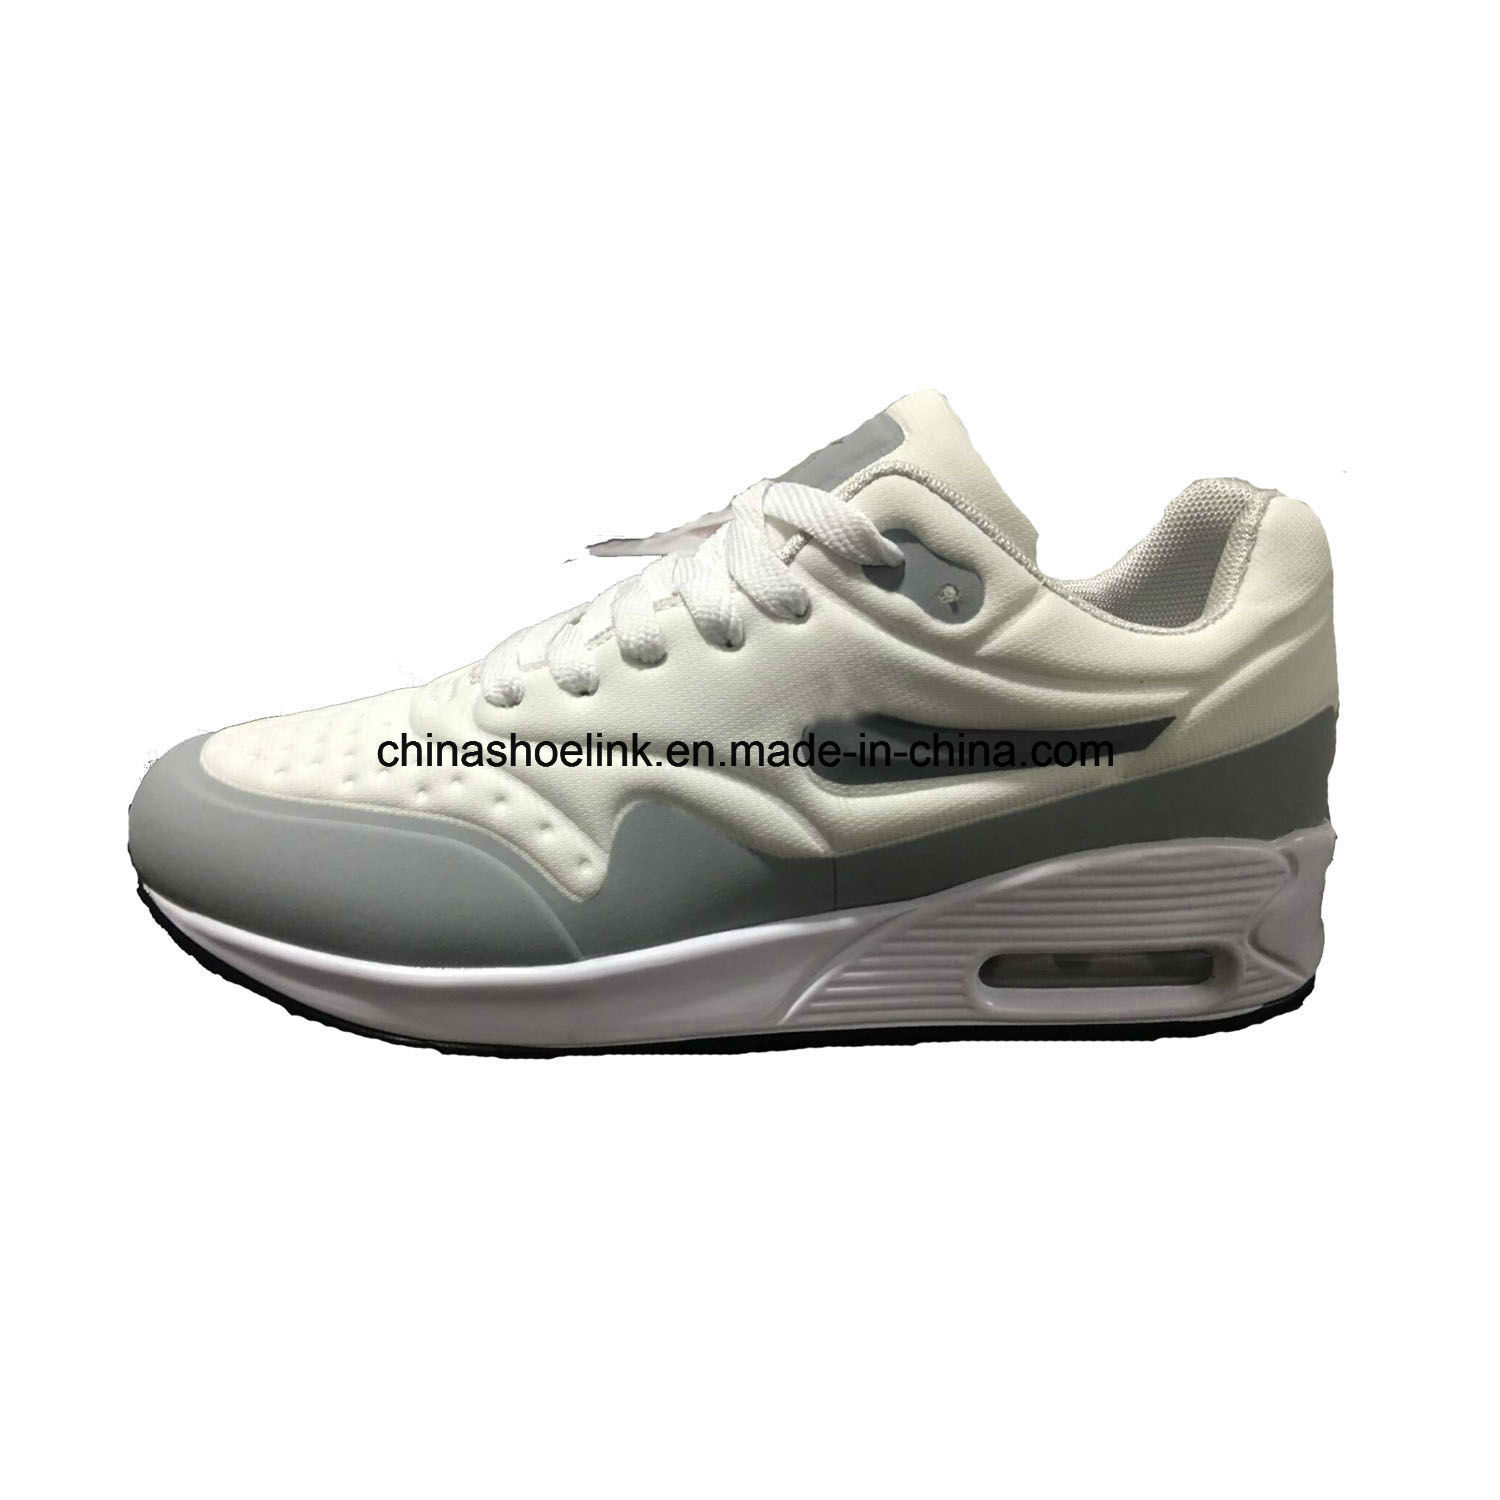 2017 Fashion Men′s Sneaker Shoes, Running Shoes, Sport&Athletic Shoes